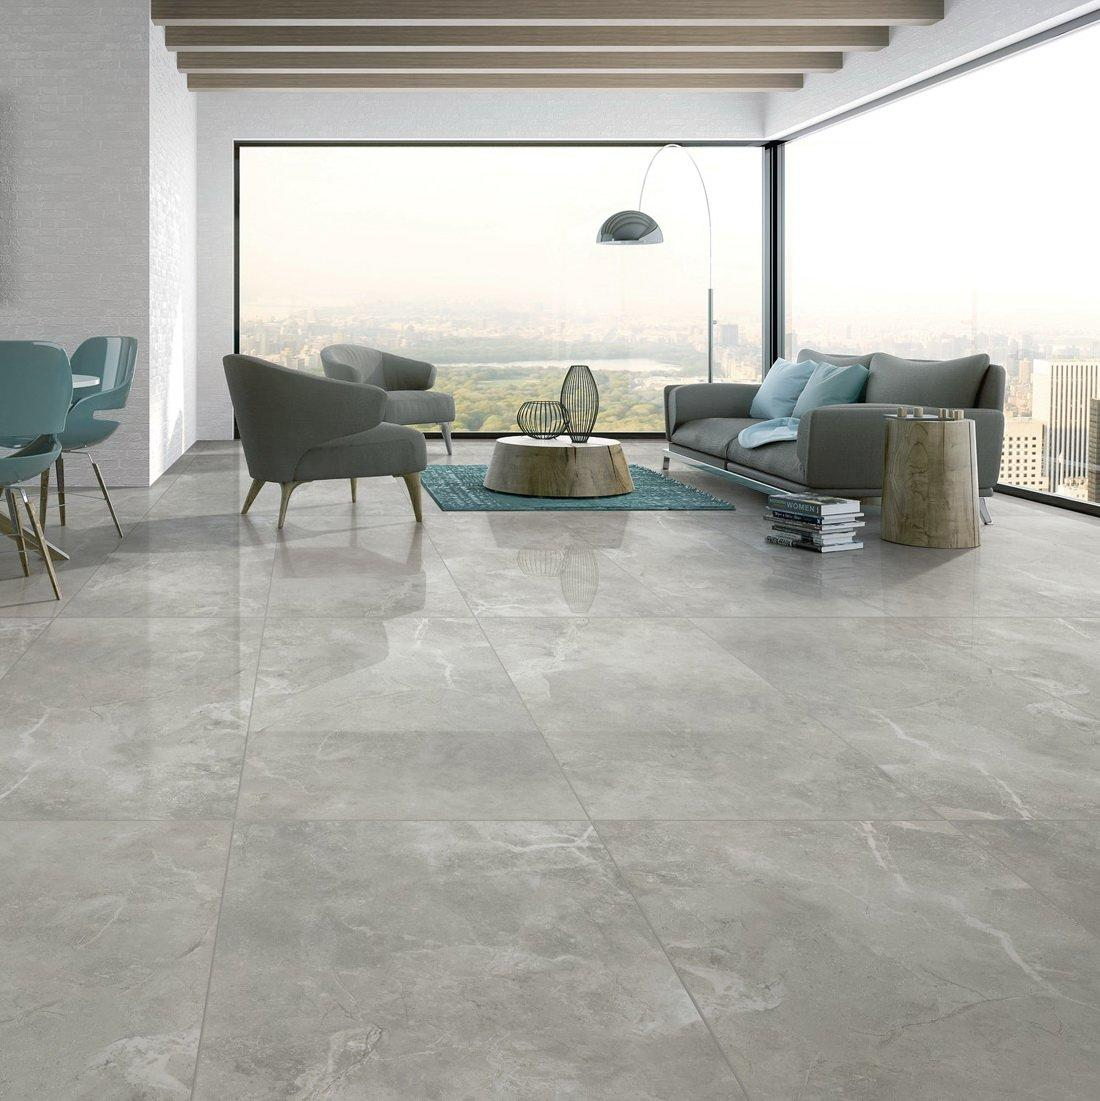 Pupes light grey Full body Marble tiles   VDLS1261390YJT  60X120cm/24x48'